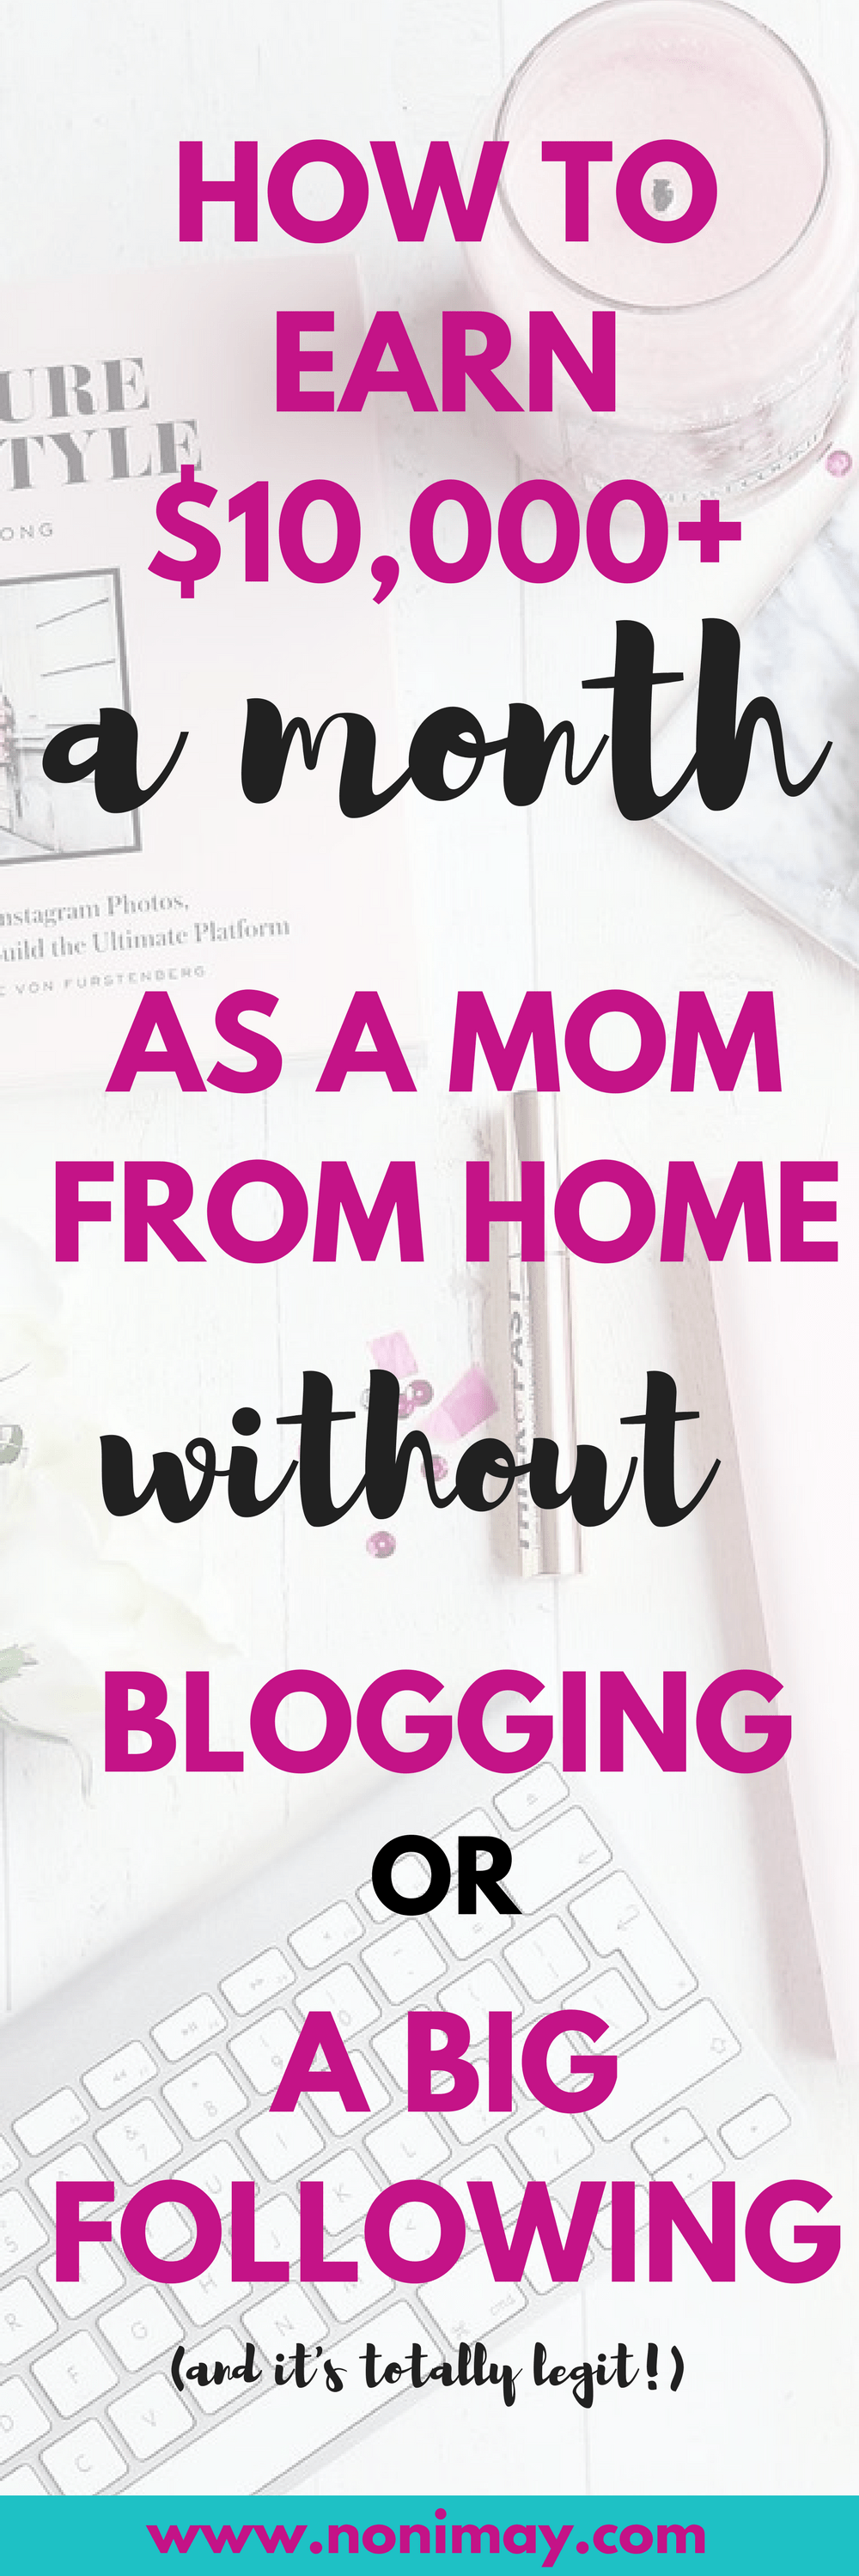 How to earn $10,000 a month as a mom without blogging or a big following and it's totally legit